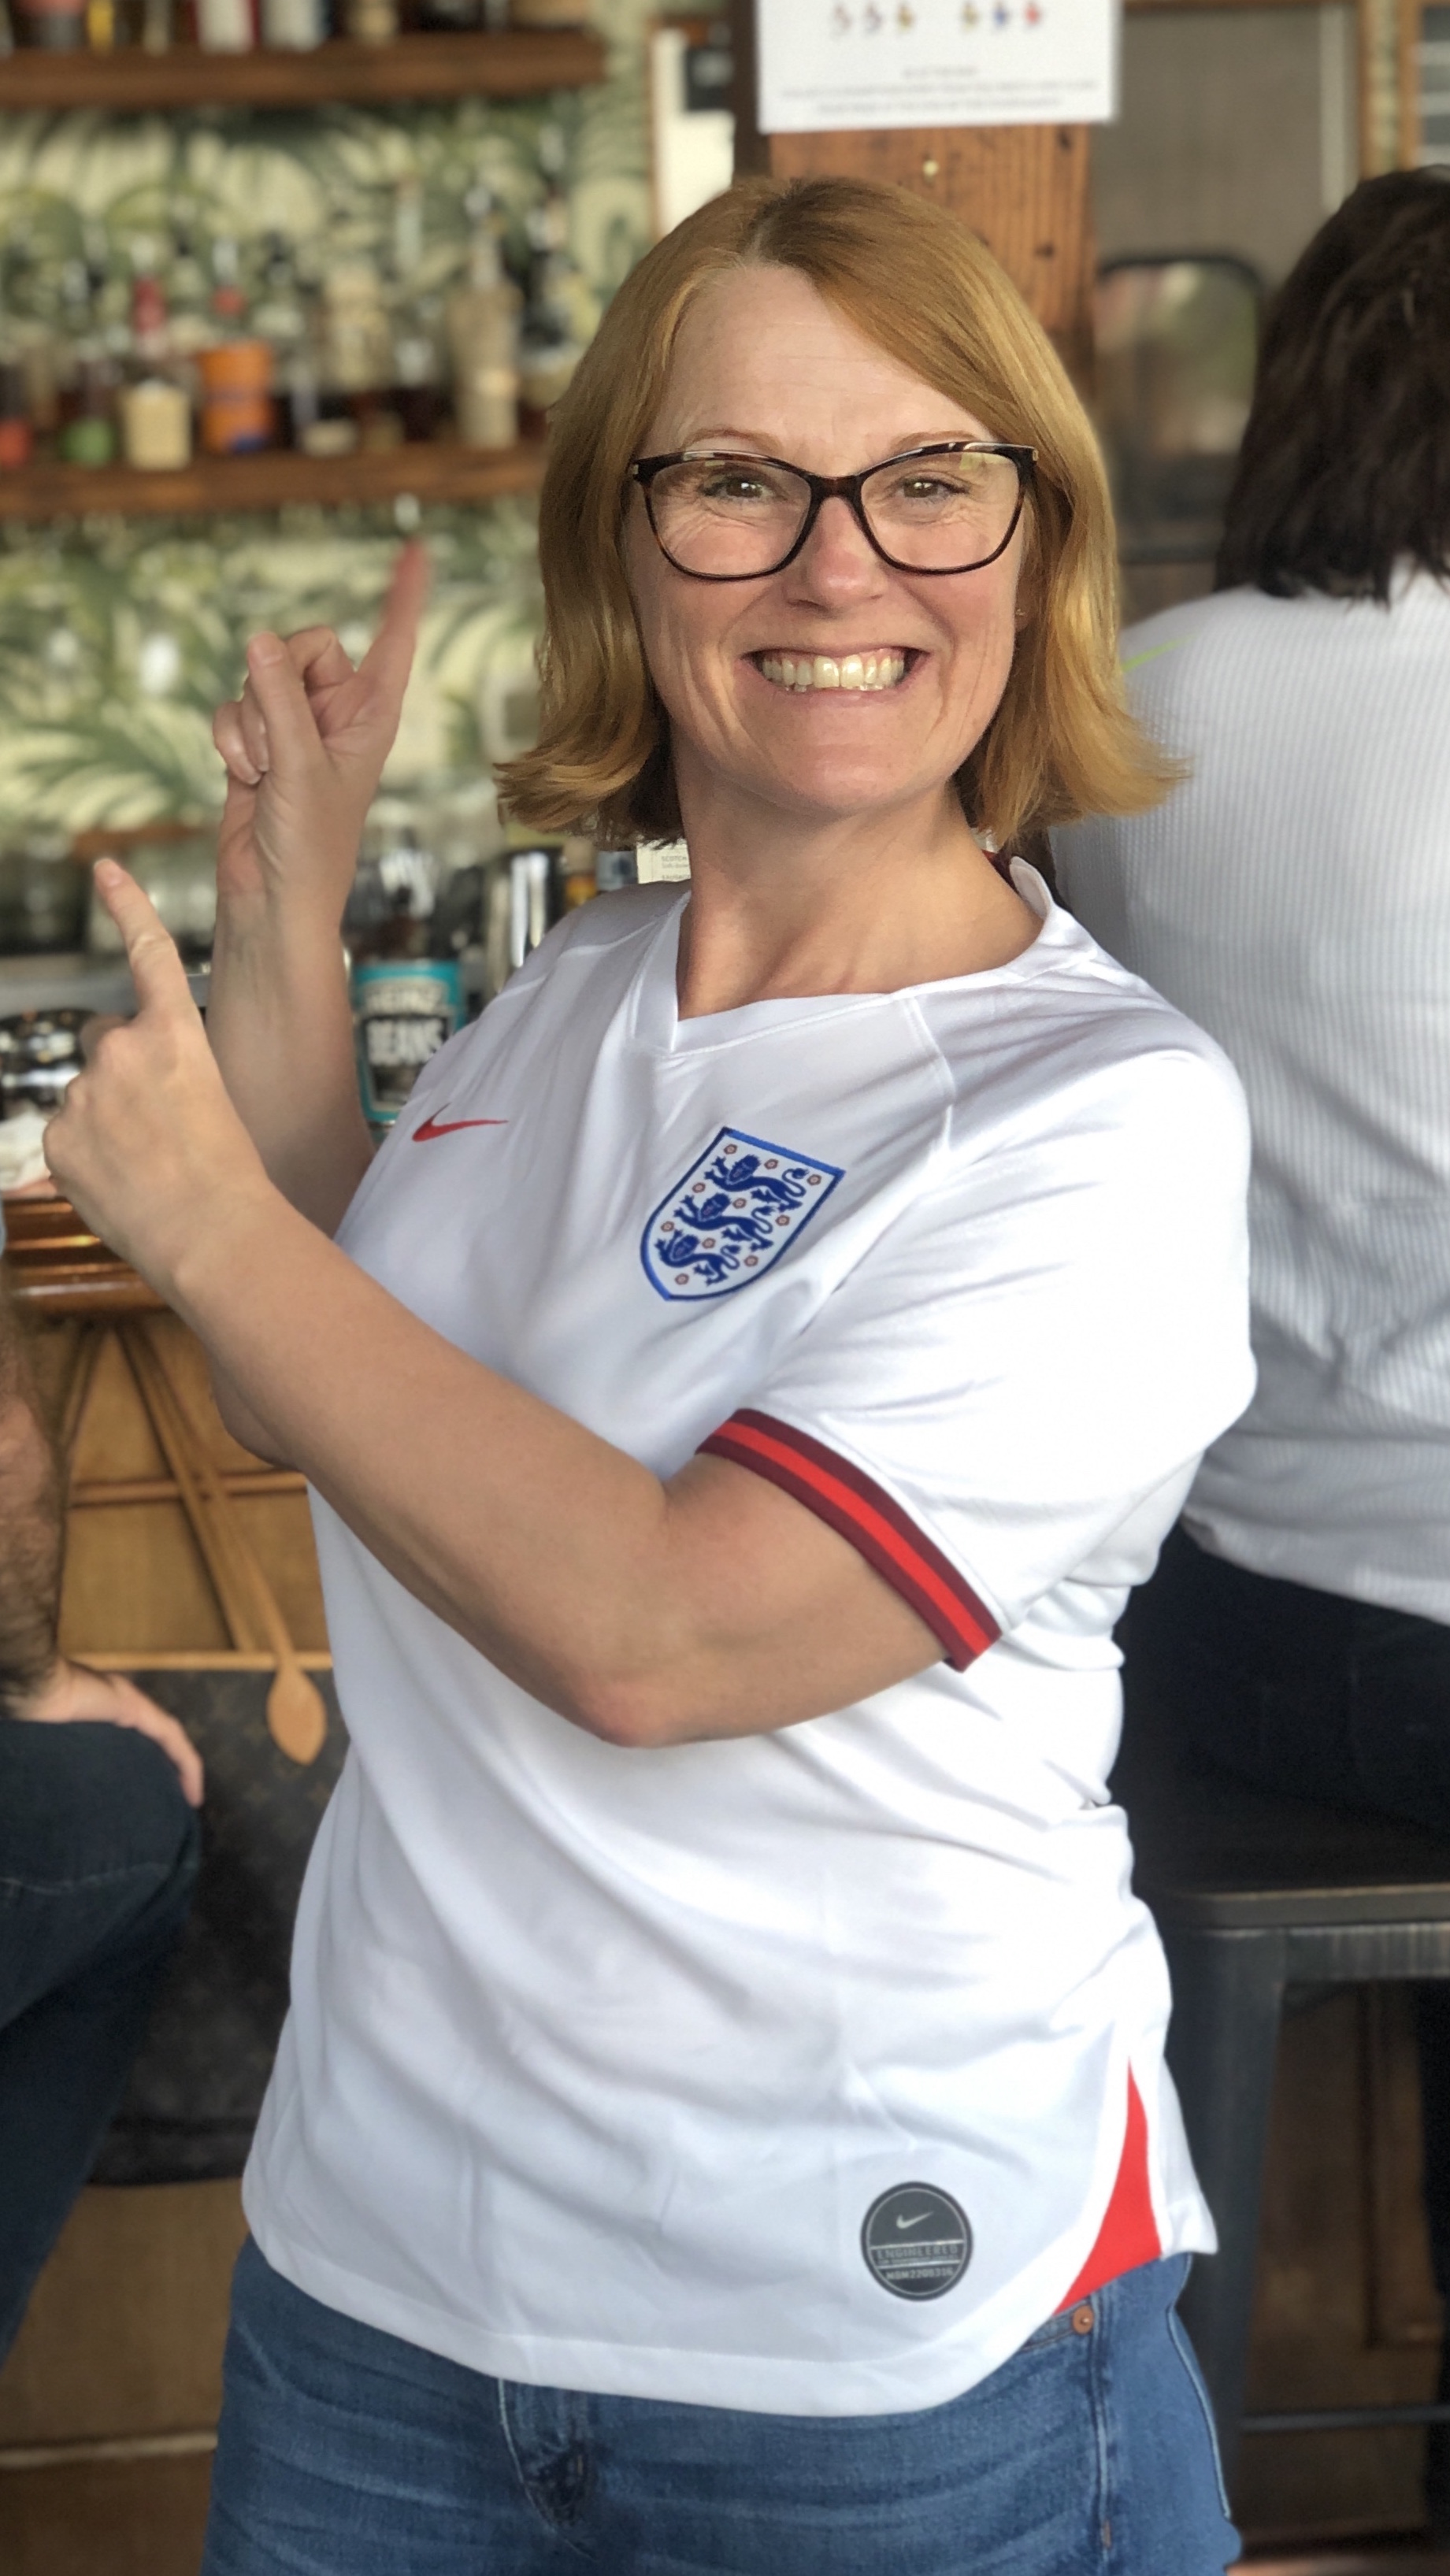 England fan WWC 2019.jpeg